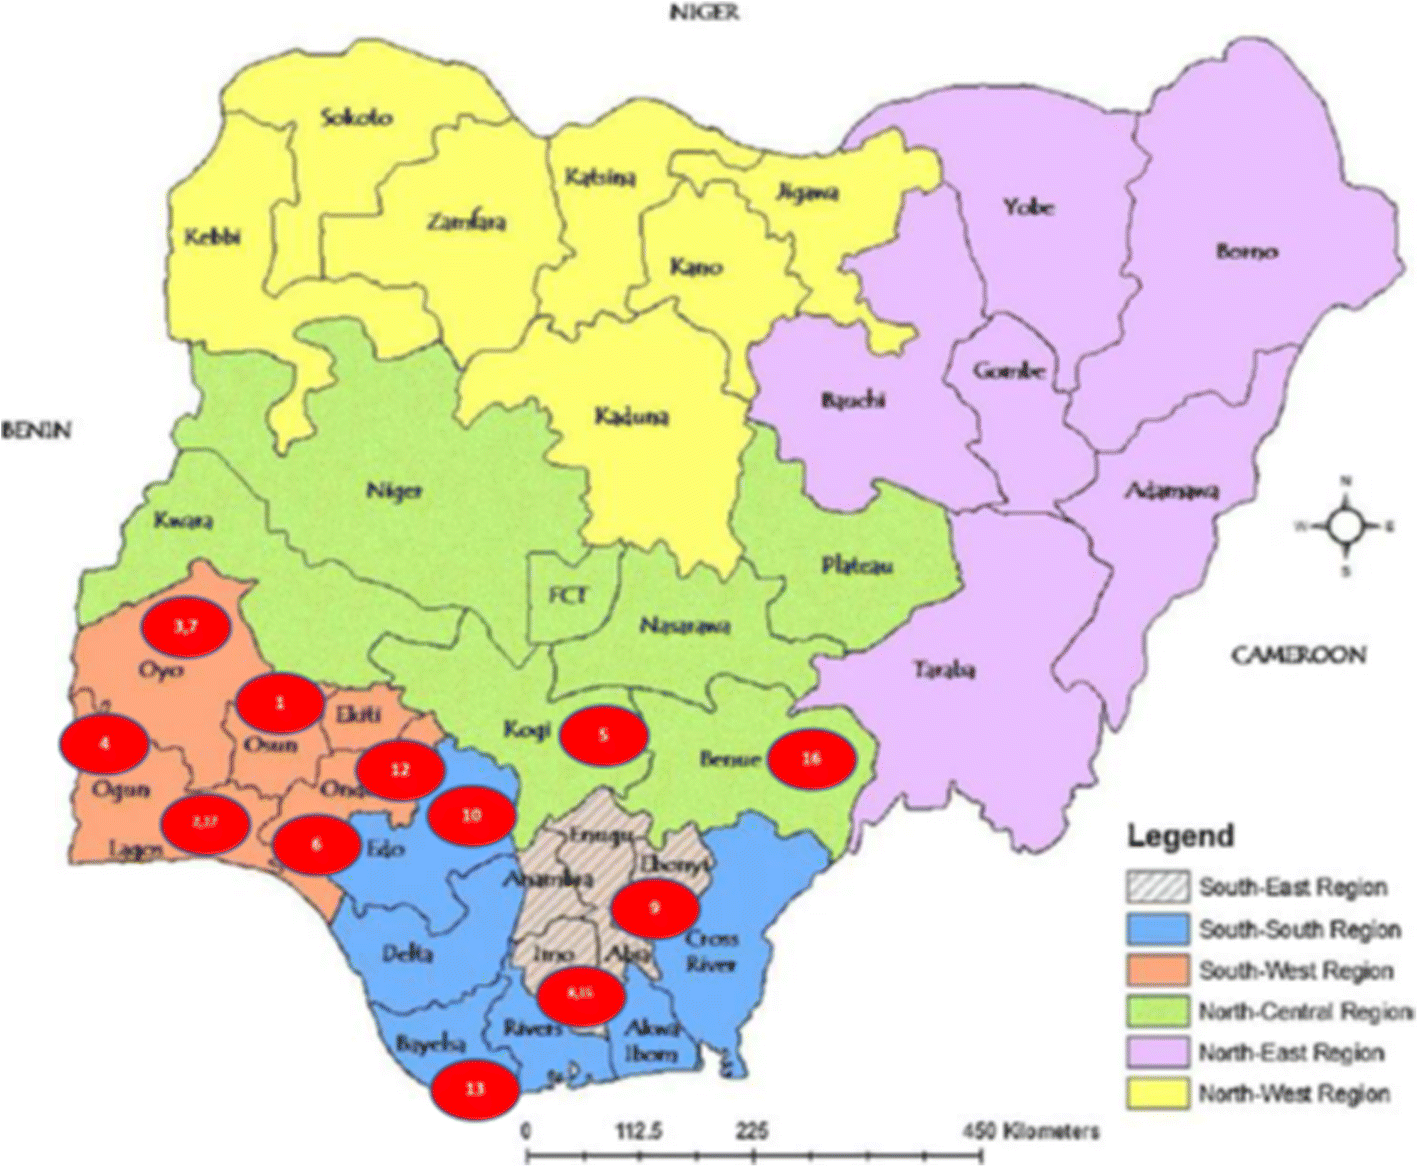 Healthcare workers' industrial action in Nigeria: a cross